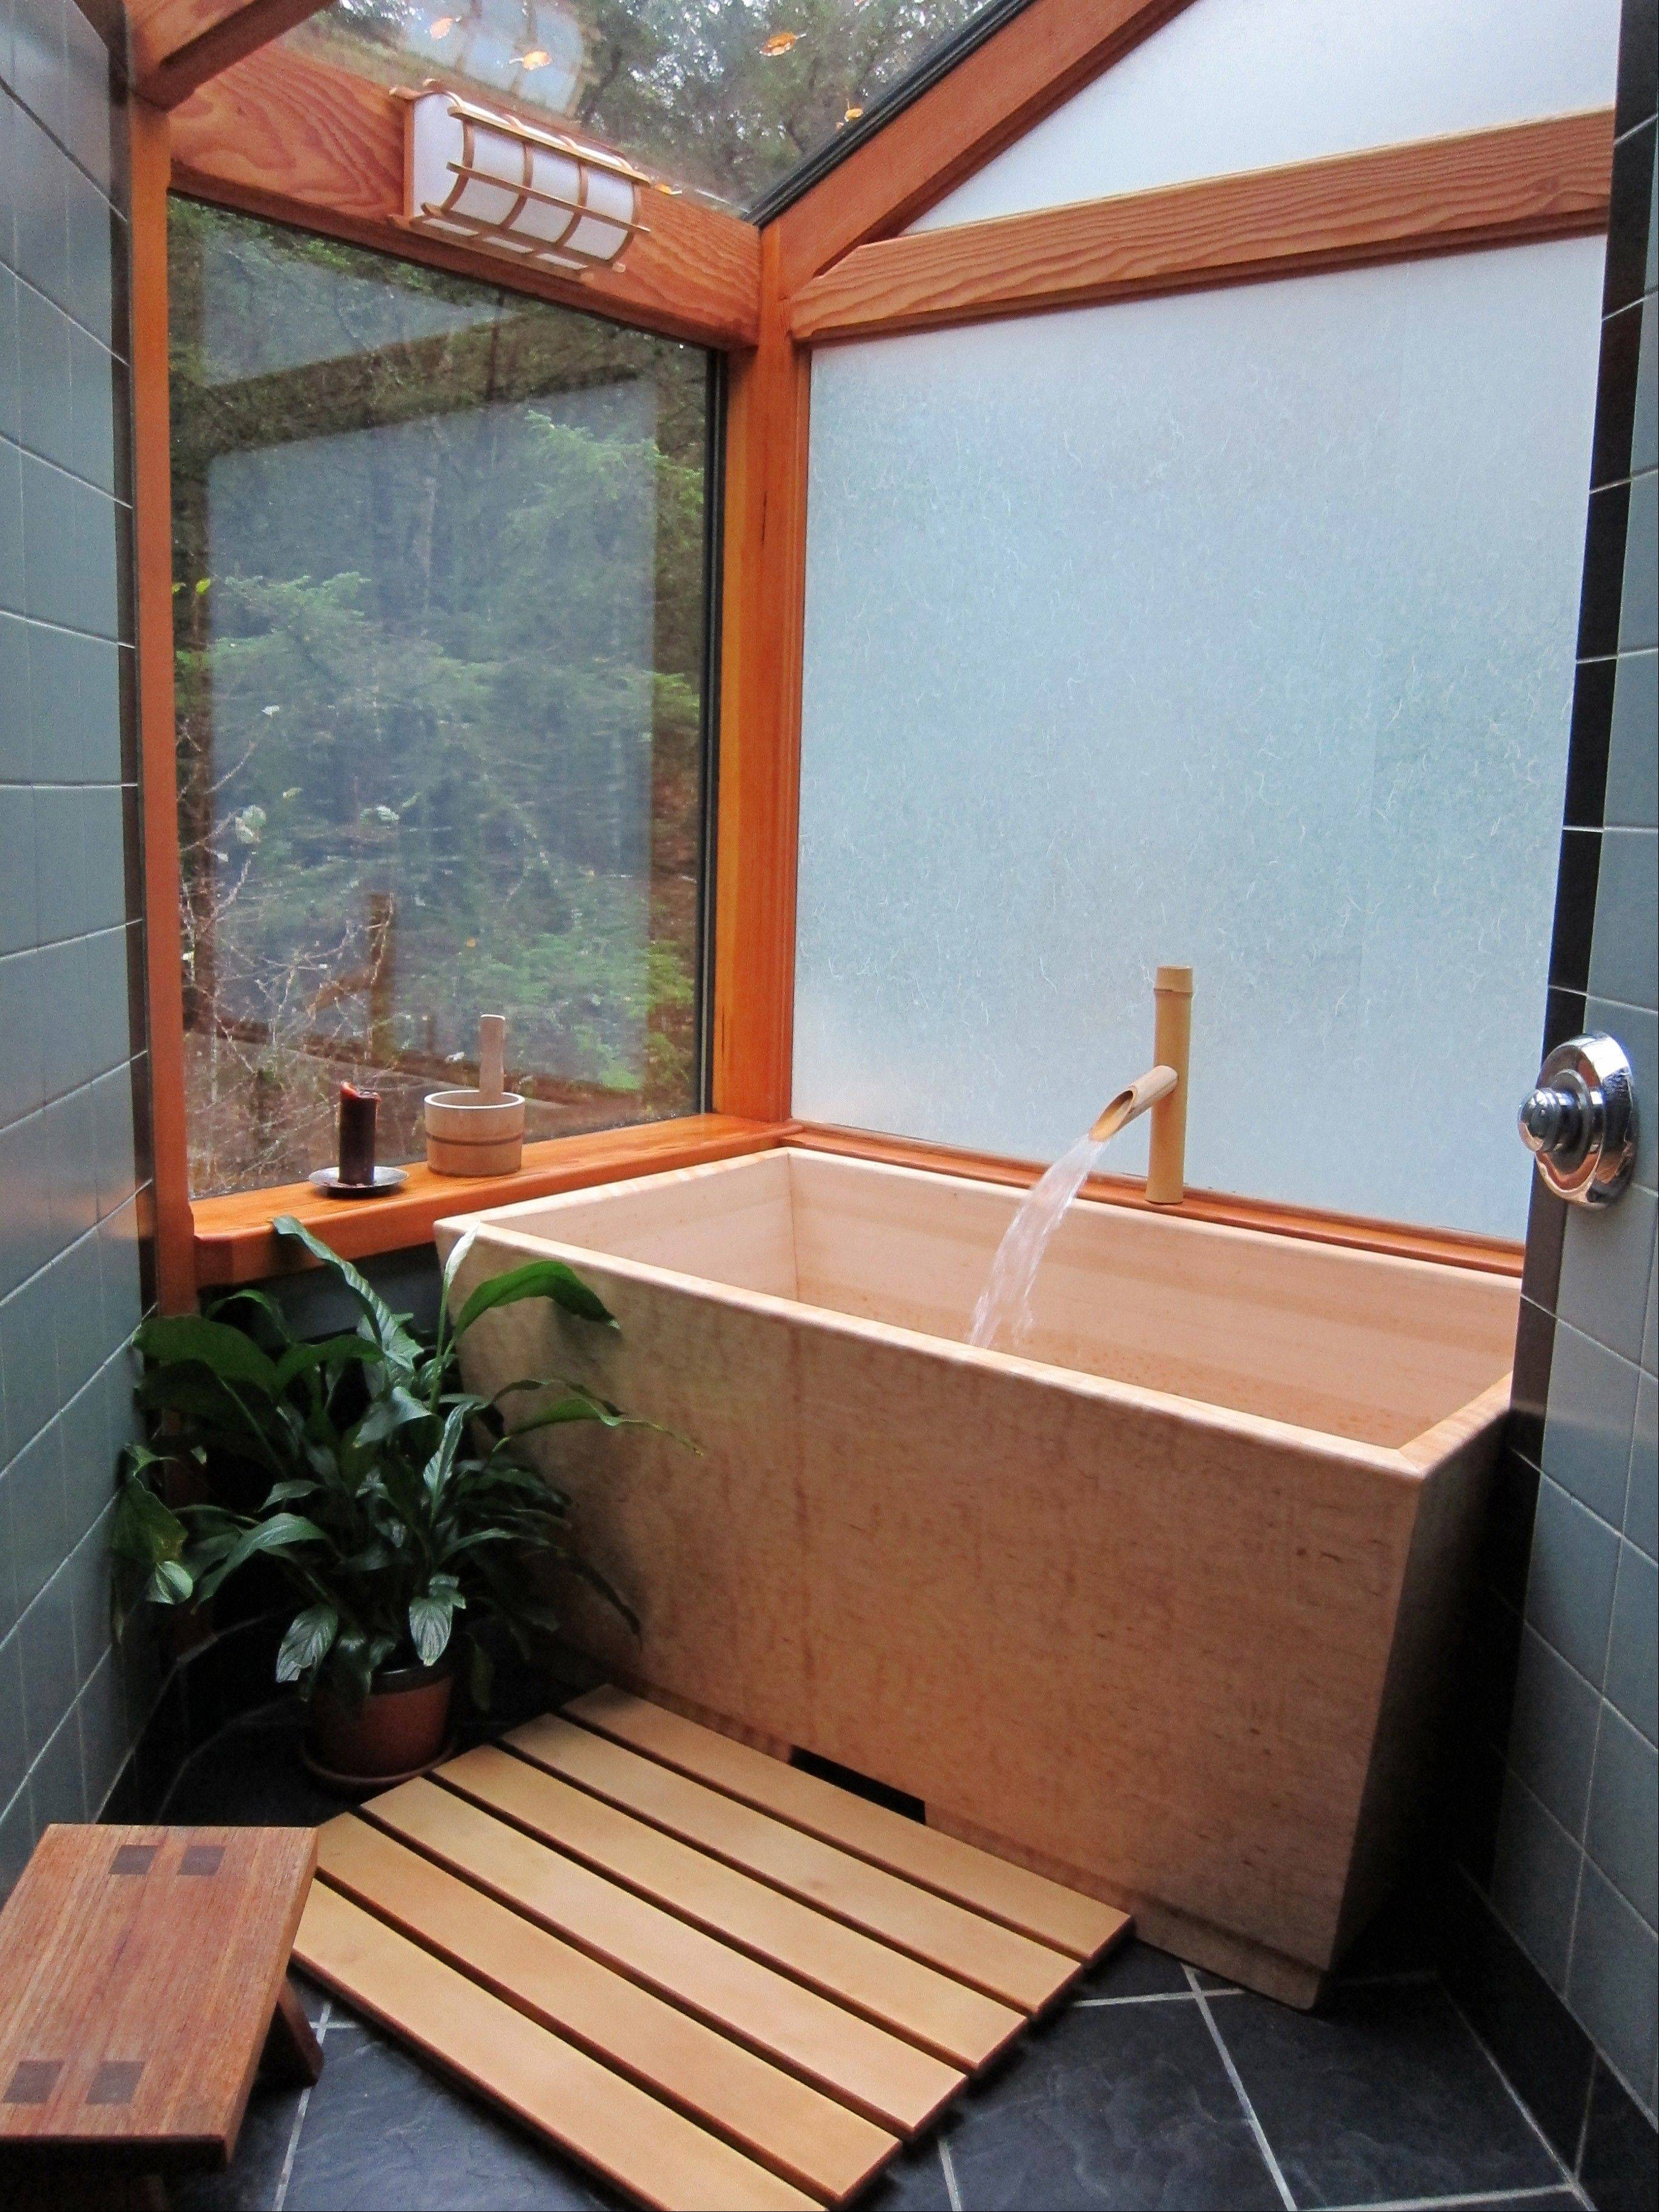 The Sea Otter Woodworks' Kyoto soaking tub is made of fragrant Hinoki cypress.